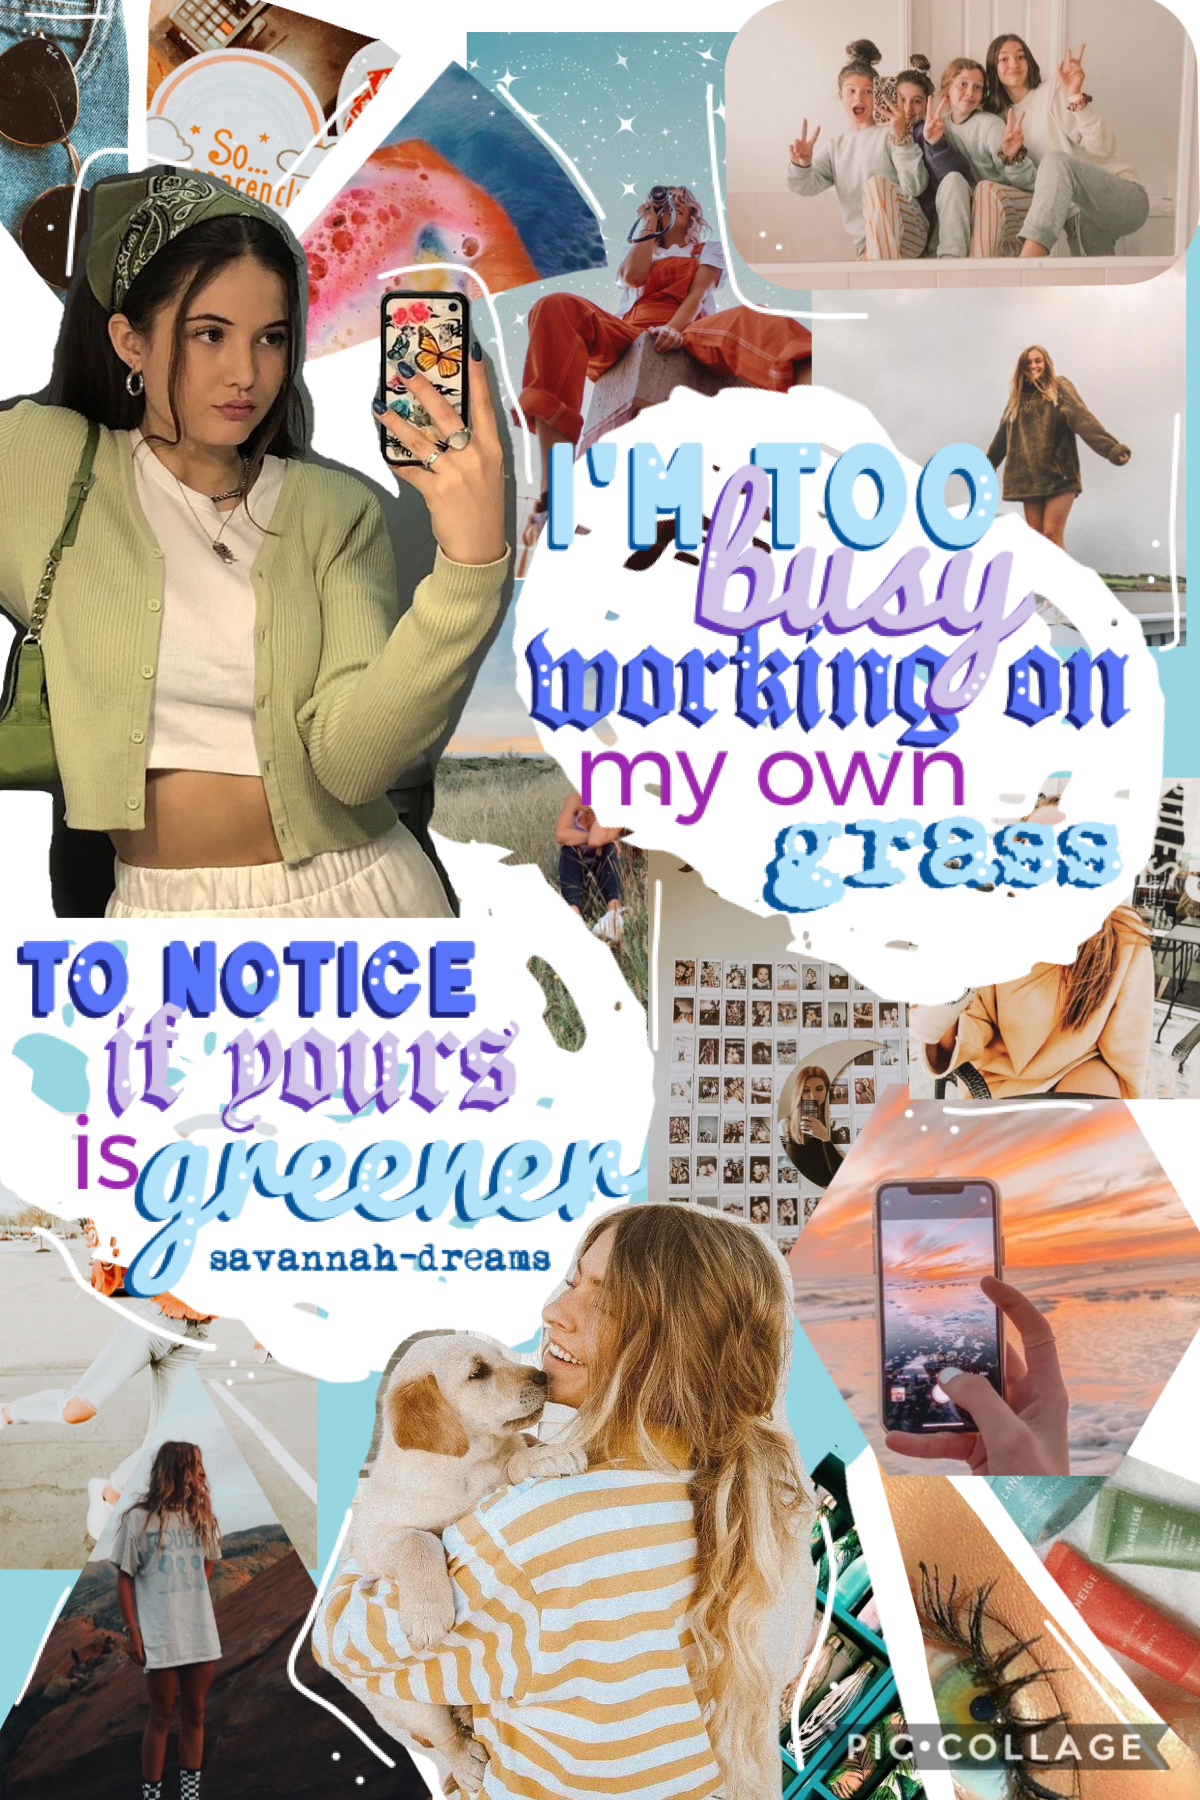 hey everyone 🧚🏼♀️ this collage is based on an old one of mine 🌈 totally loving this rn, what do you guys think? ✌🏼 poll in bio- please check it out 🦩🦩 caption continued in comments...